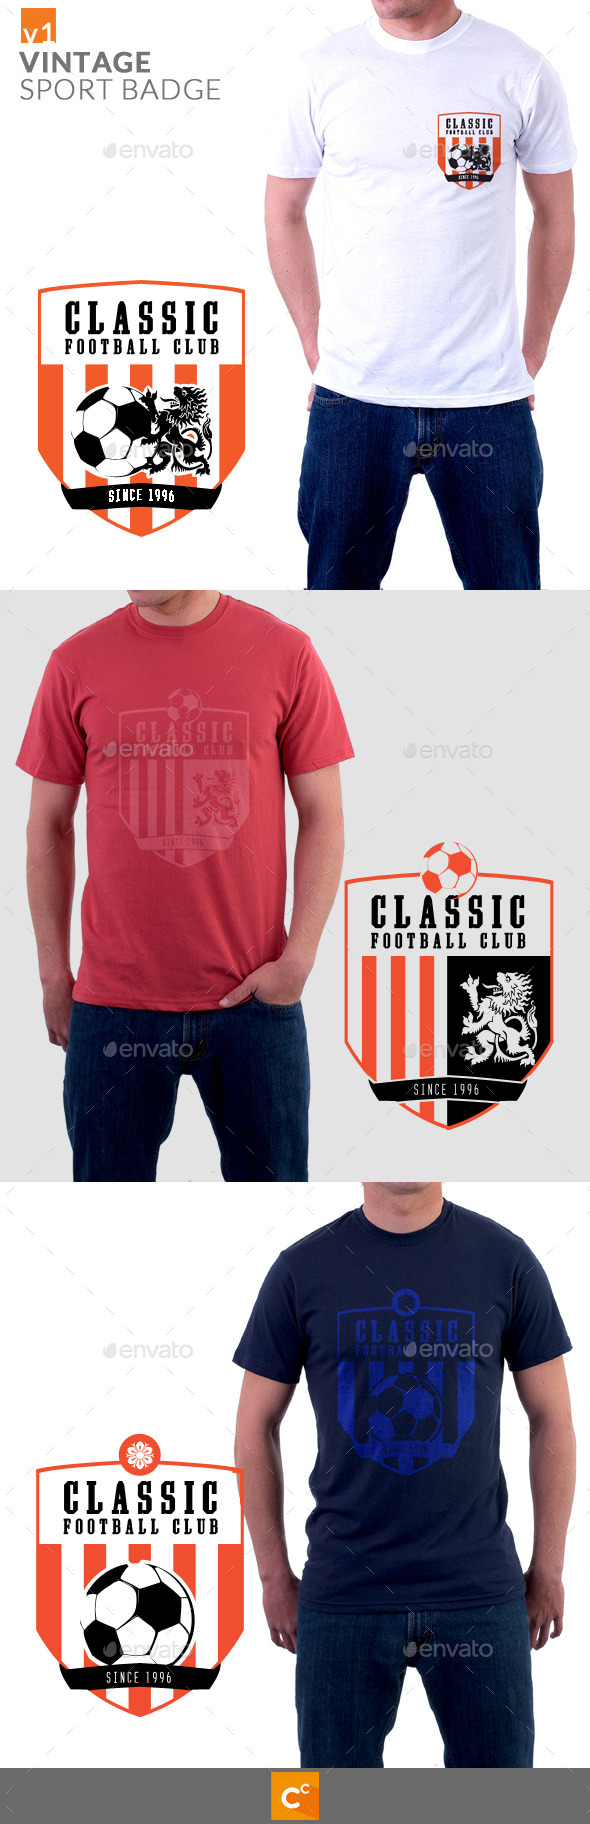 Vintage Sport Badge T-shirt